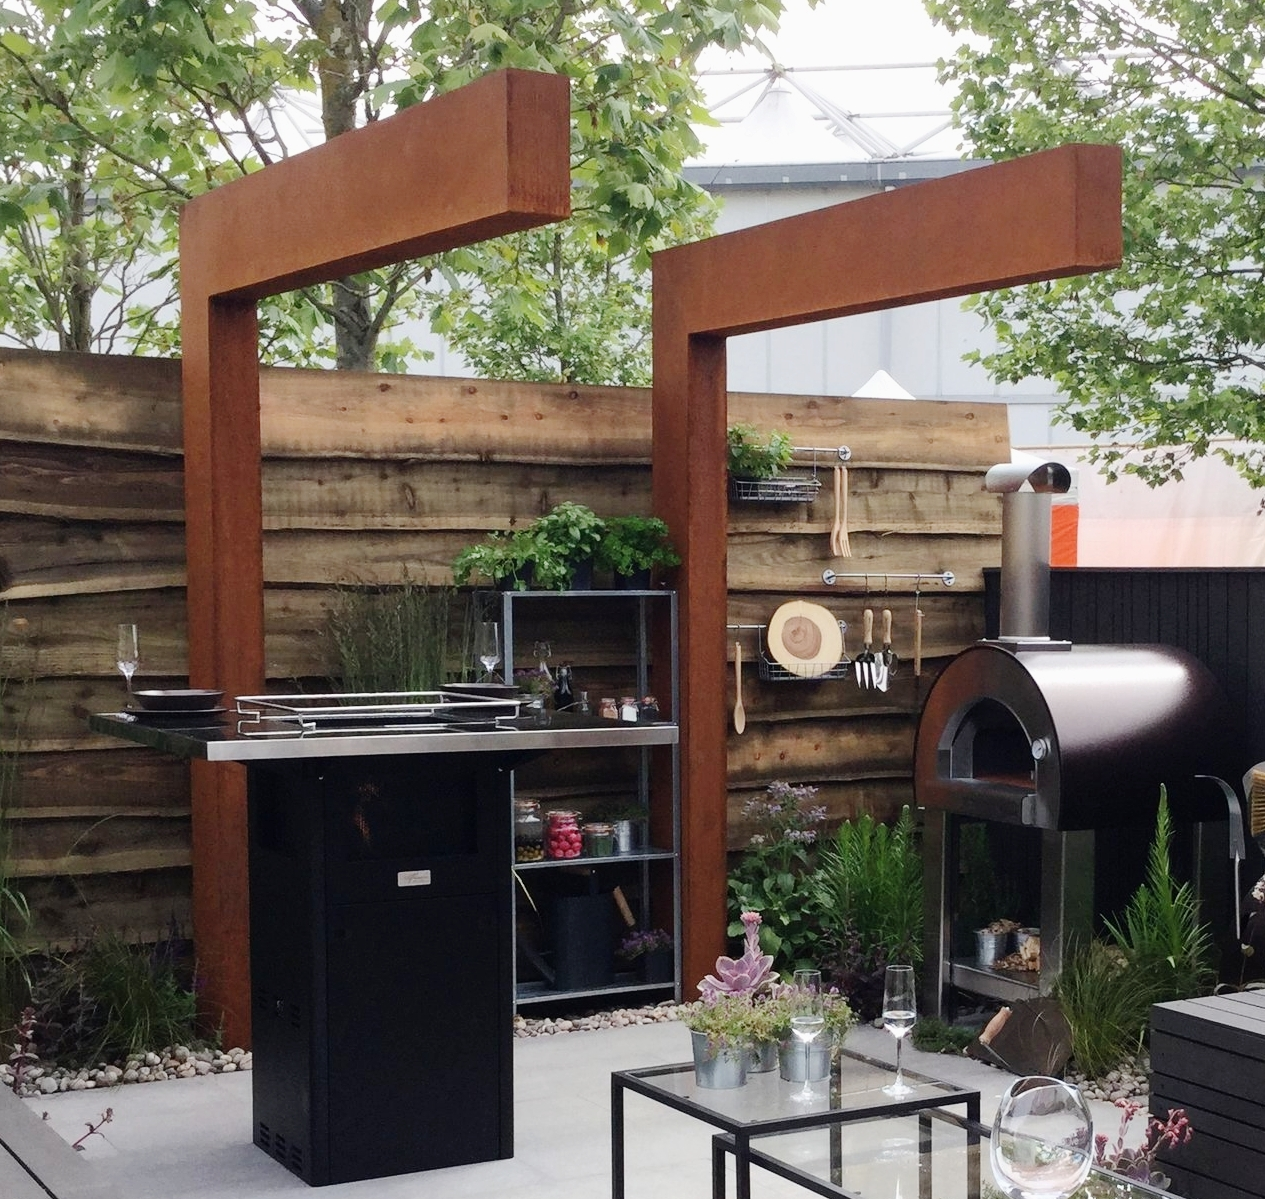 Corten Steel Cantilevered Pergola Providing Privacy For Outdoor Kitchen. Designers: Michael McGarr and Rob Warnes, Eat and Shelter Garden. Image: Lorraine Young/Verve Garden Design